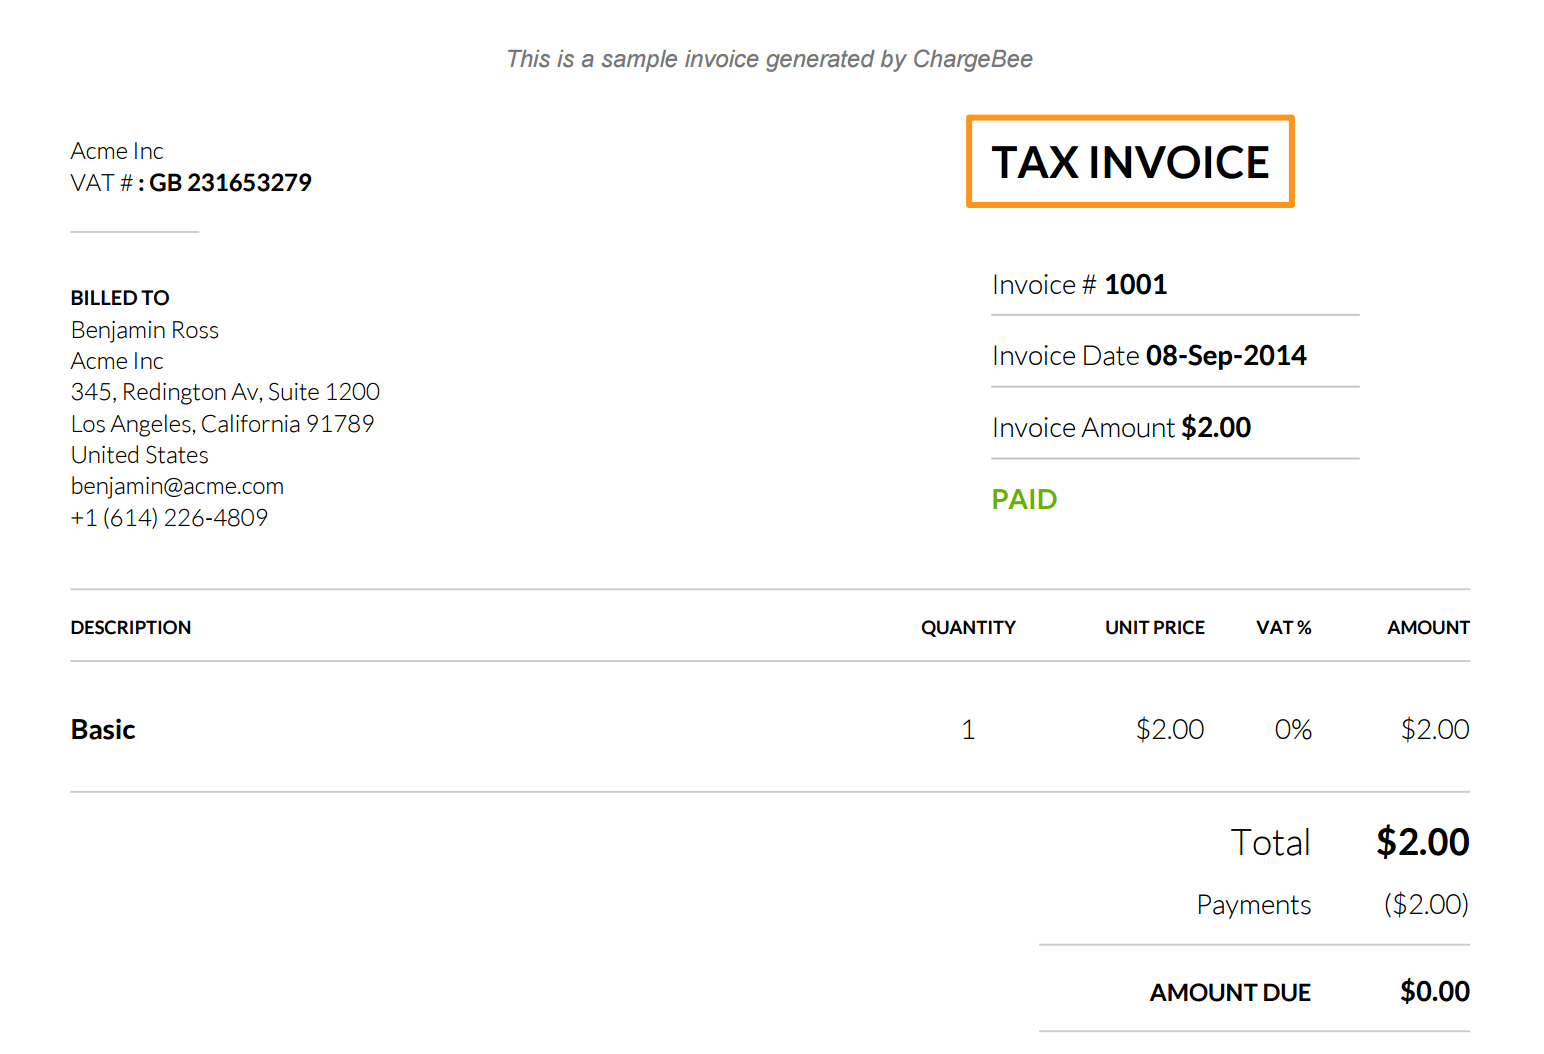 Imagerackus  Nice Customizing Invoice Title With Fair Back To Timeline With Delightful Chit Receipt Also Paid Receipt Template Free In Addition Virtuallythere E Ticket Receipt And Government Tax Receipts As Well As Quiche Receipts Additionally Acknowledge The Receipt Of From Chargebeecom With Imagerackus  Fair Customizing Invoice Title With Delightful Back To Timeline And Nice Chit Receipt Also Paid Receipt Template Free In Addition Virtuallythere E Ticket Receipt From Chargebeecom